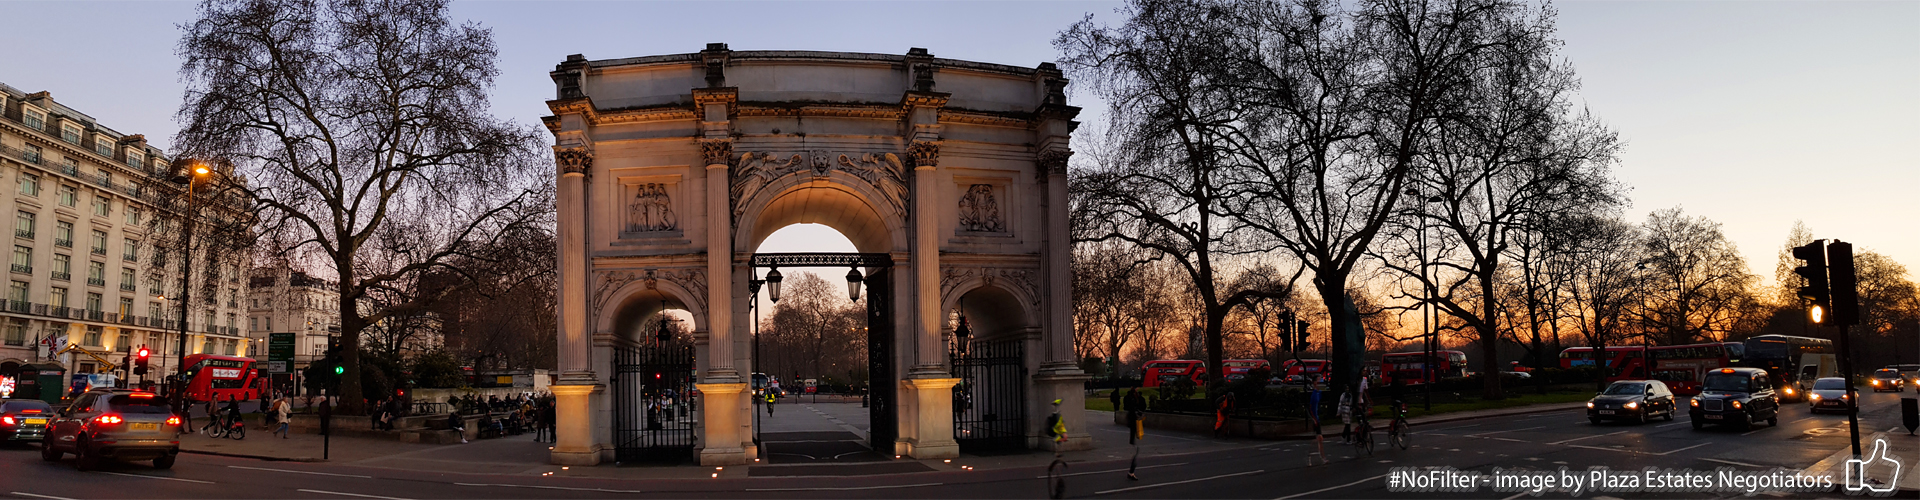 Marble Arch is a 19th-century white marble-faced triumphal arch in London, England.